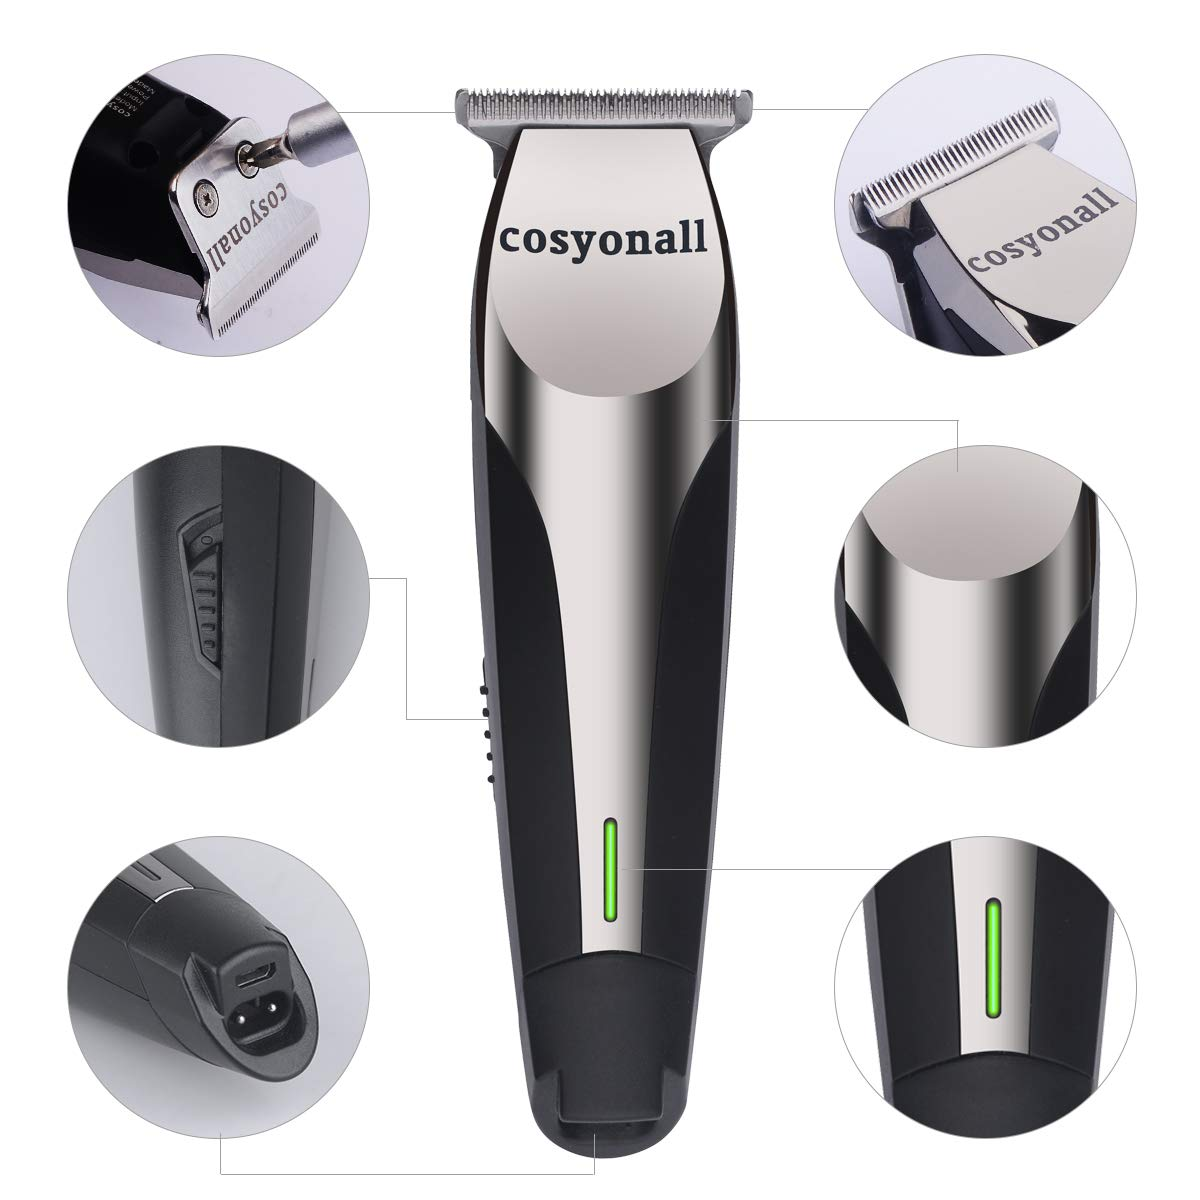 Cosyonall Pro Outliner Hair Beard Trimmer Kit USB Rechargeable Hair Clippers T-Blade Cordless body Grooming Trimmer Kit of Mustache Trimmer,Lithium Ion,Guide Combs